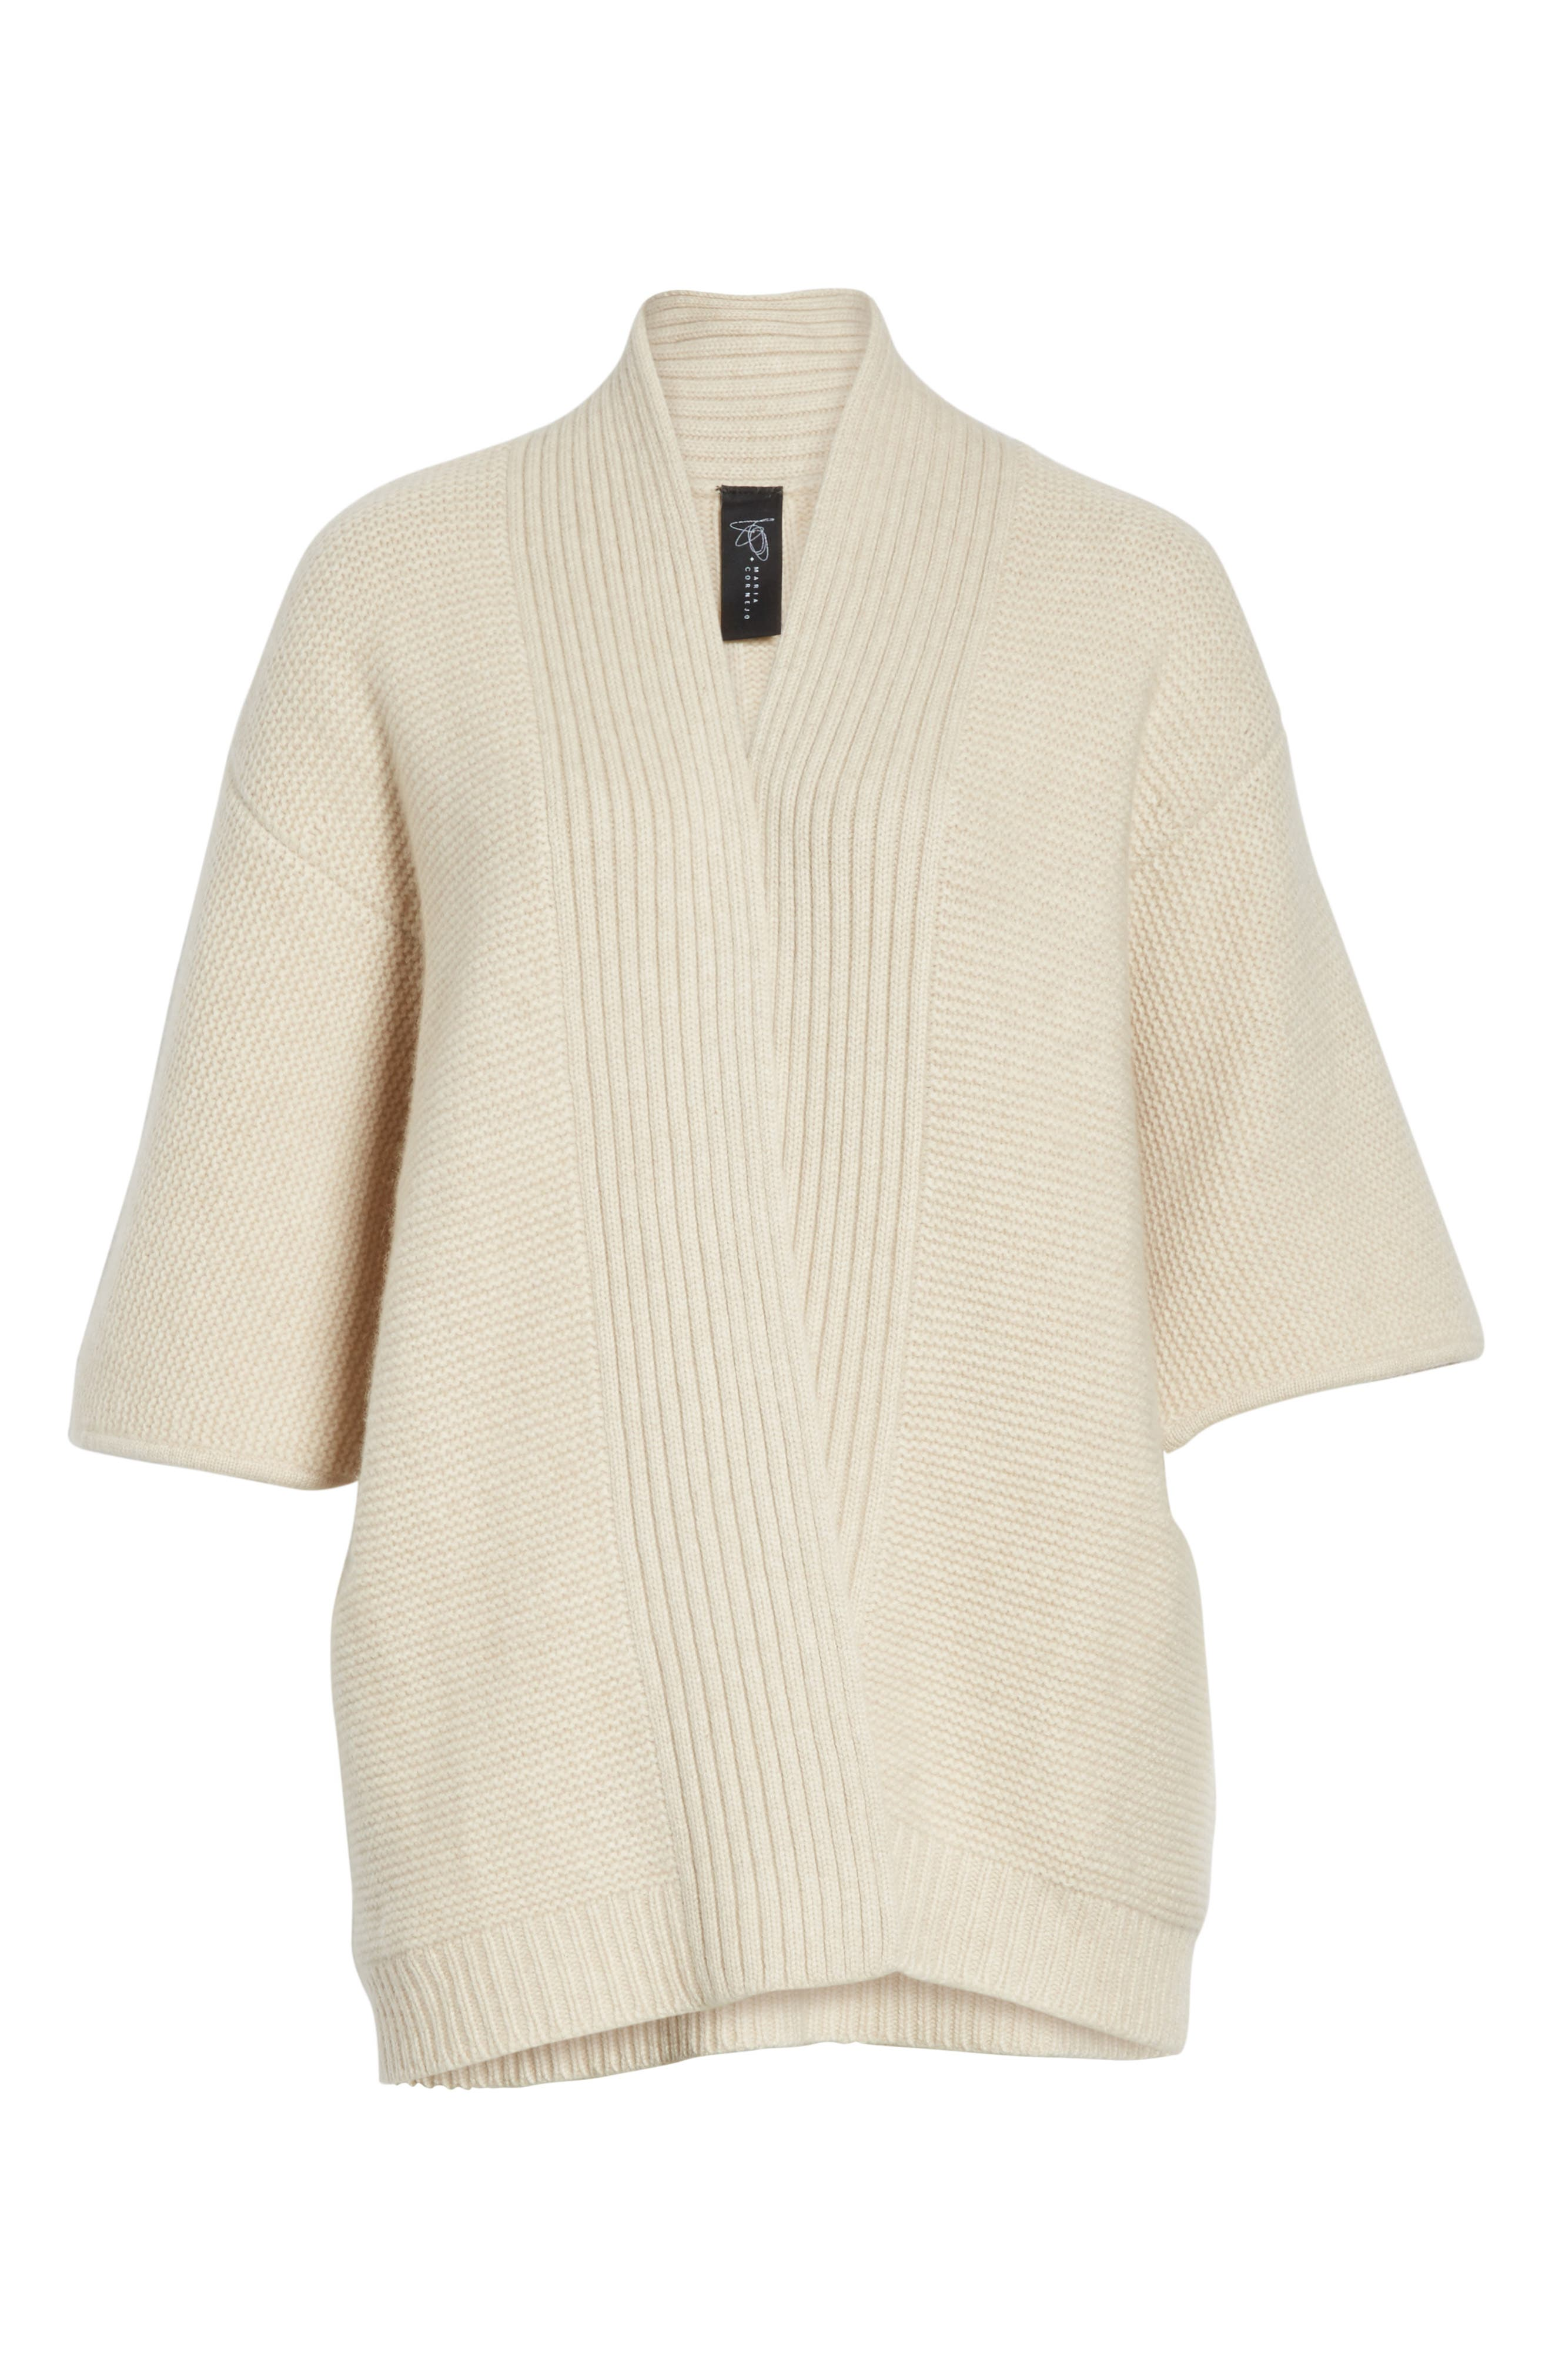 Cashmere & Merino Wool Cardigan,                             Alternate thumbnail 6, color,